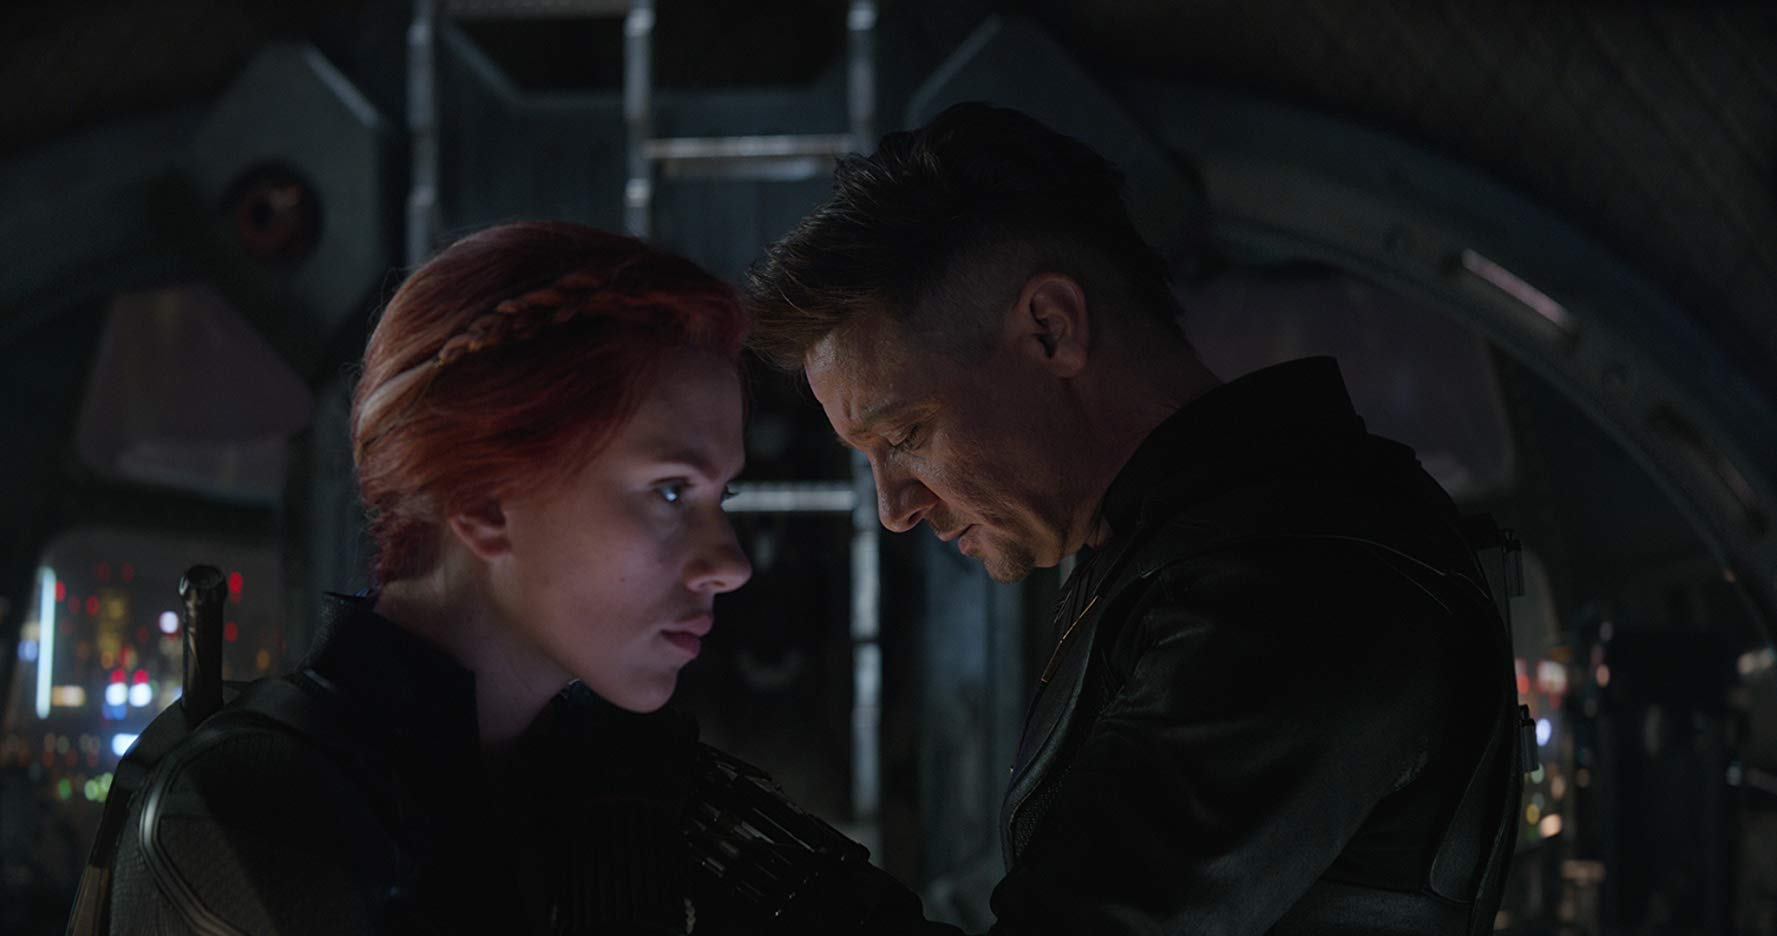 'Avengers: Endgame' Heads for Monster $300 Million U.S. Opening